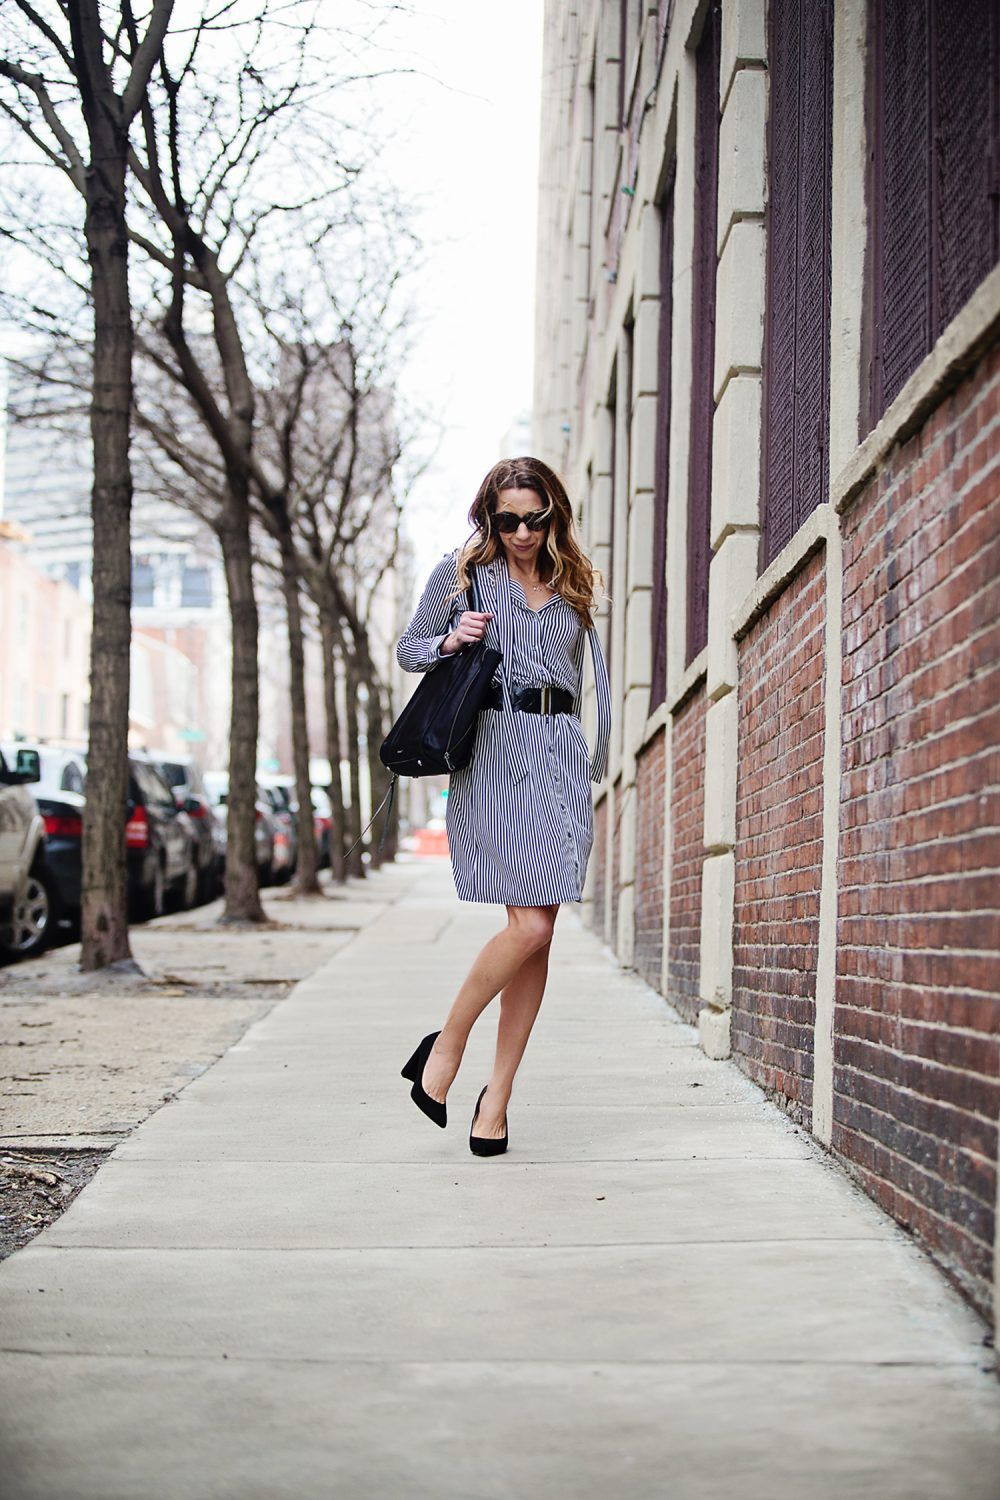 Trend spring shirtdress exclusive photo